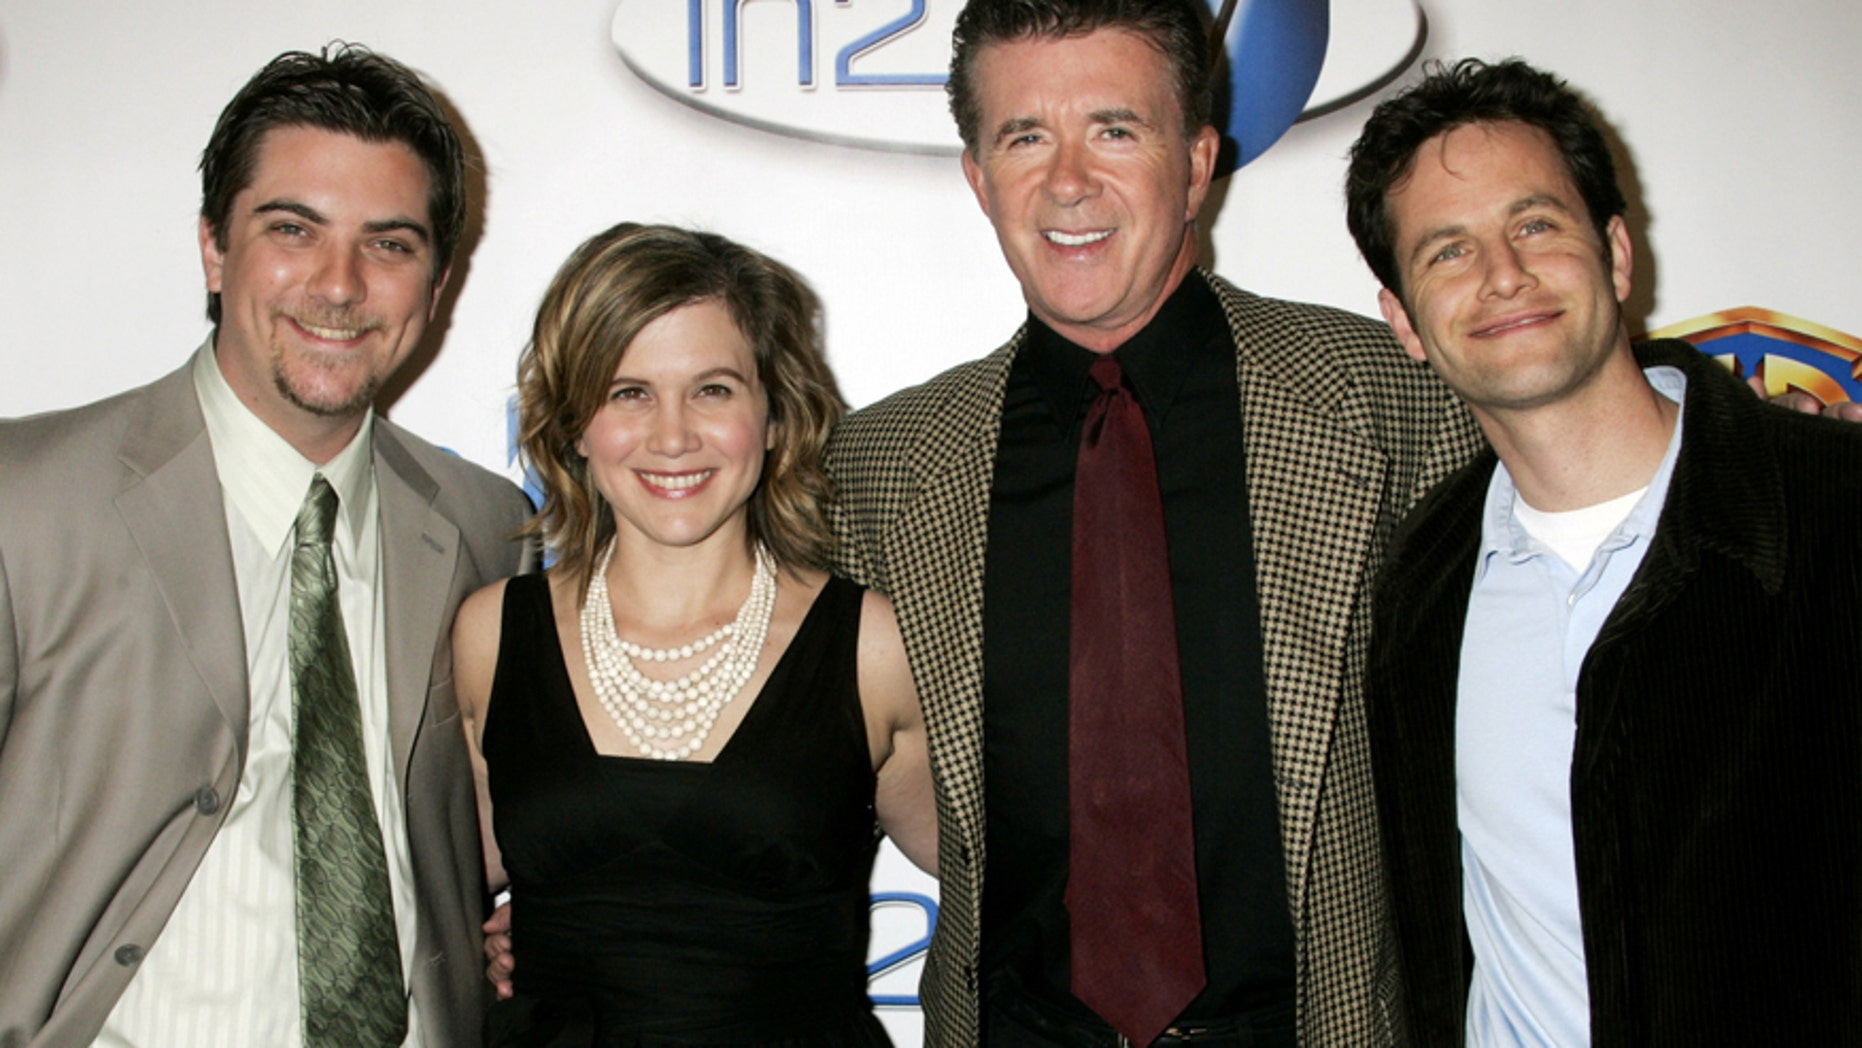 Actors (L-R) Jeremy Miller, Tracey Gold, Alan Thicke and Kirk Cameron best known for their portrayal of a family on the 'Growing Pains' television series pose as they arrive at the launch party for In2TV in Beverly Hills, California  March 15, 2006. The network offers the largest collection of free on-demand shows on the Web.